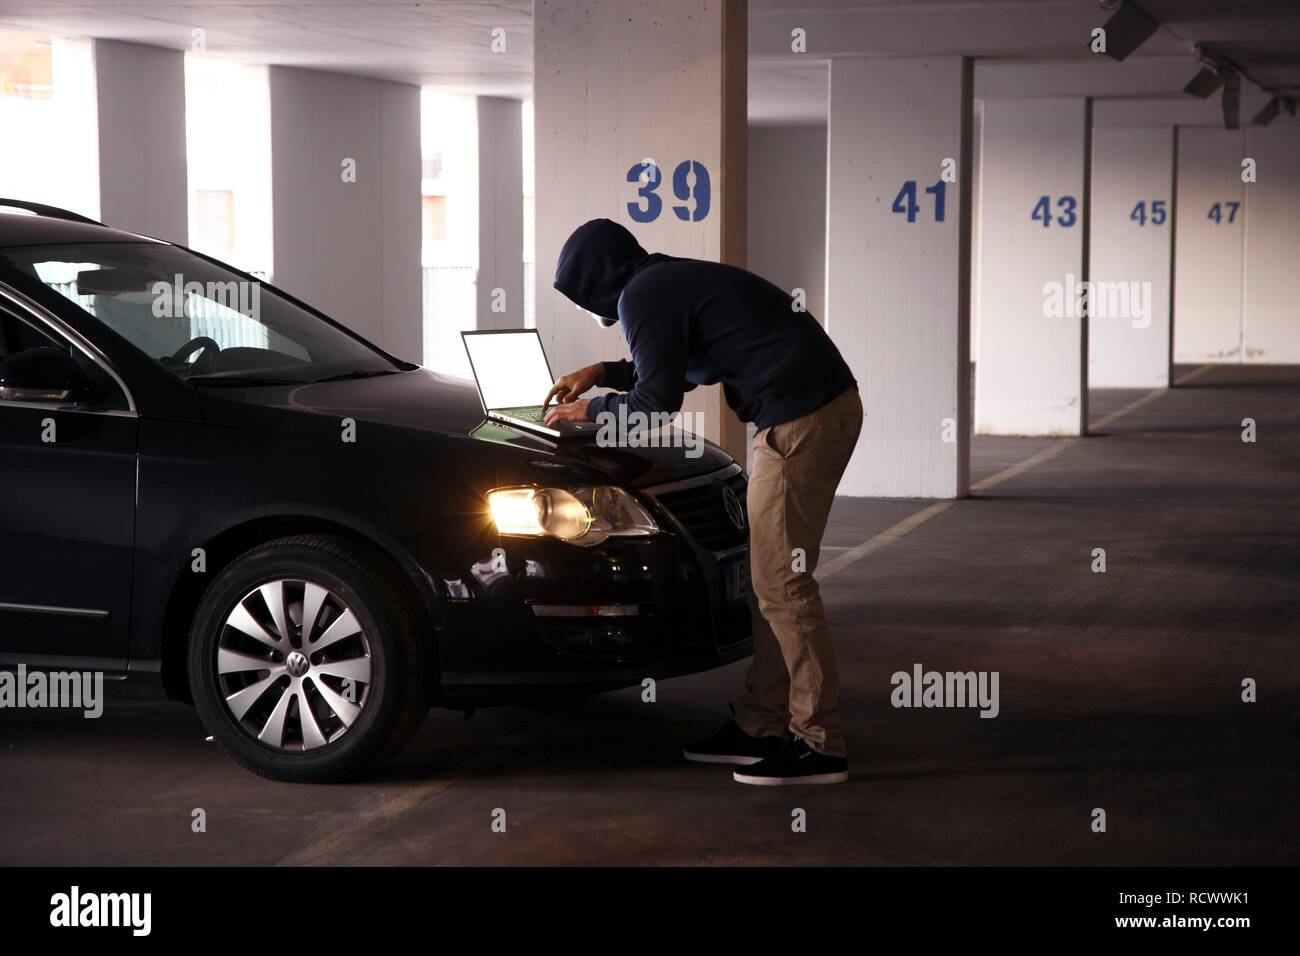 Man surfing on a laptop computer in a multi-storey car park, symbolic image for computer hacking, computer crime, cybercrime - Stock Image